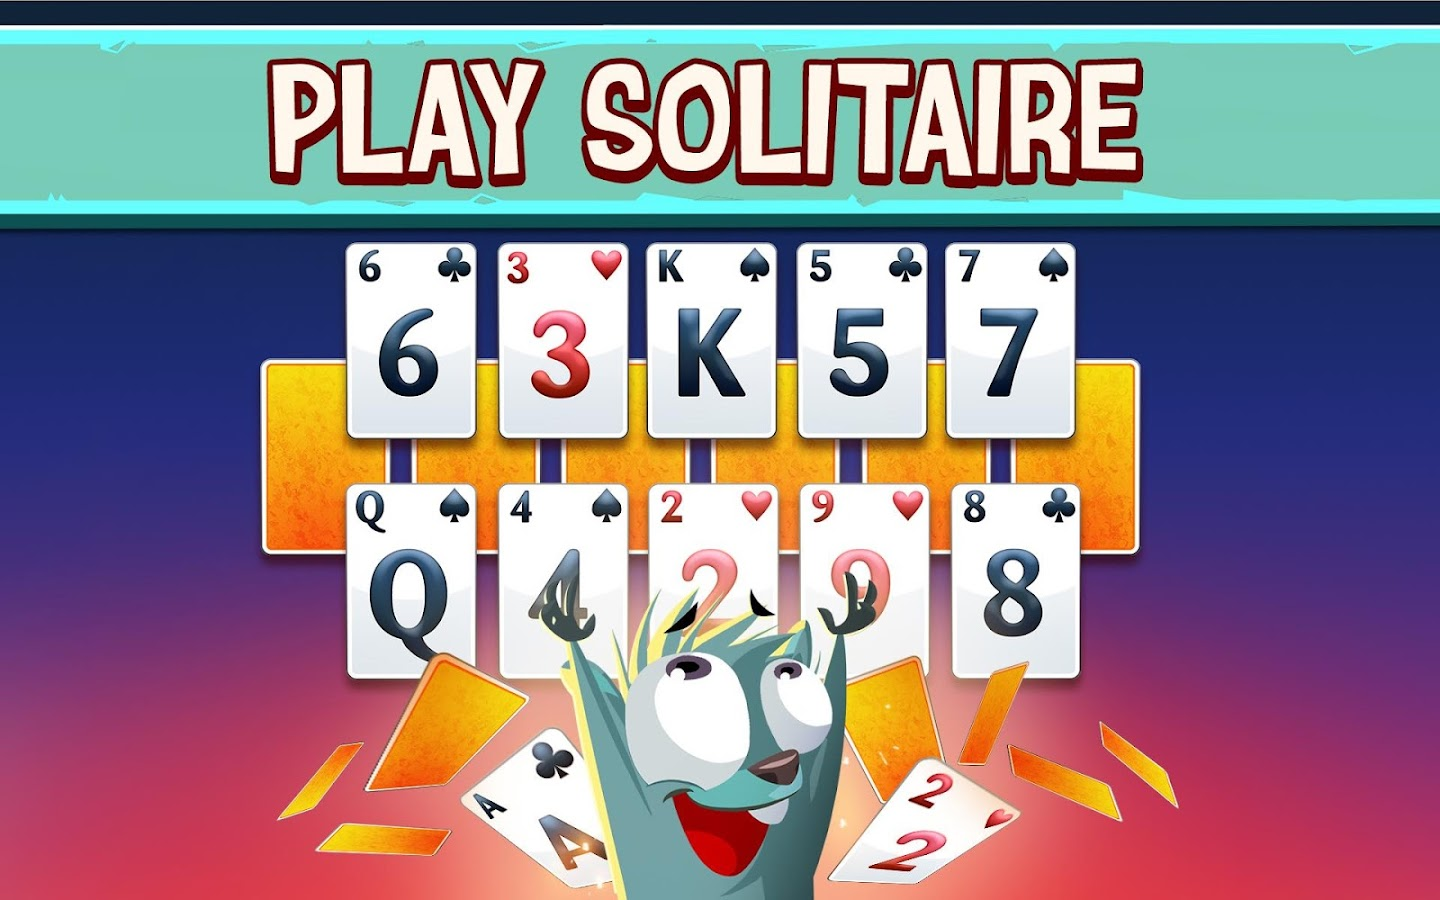 Fairway solitaire blast android apps on google play for Fairway solitaire big fish games